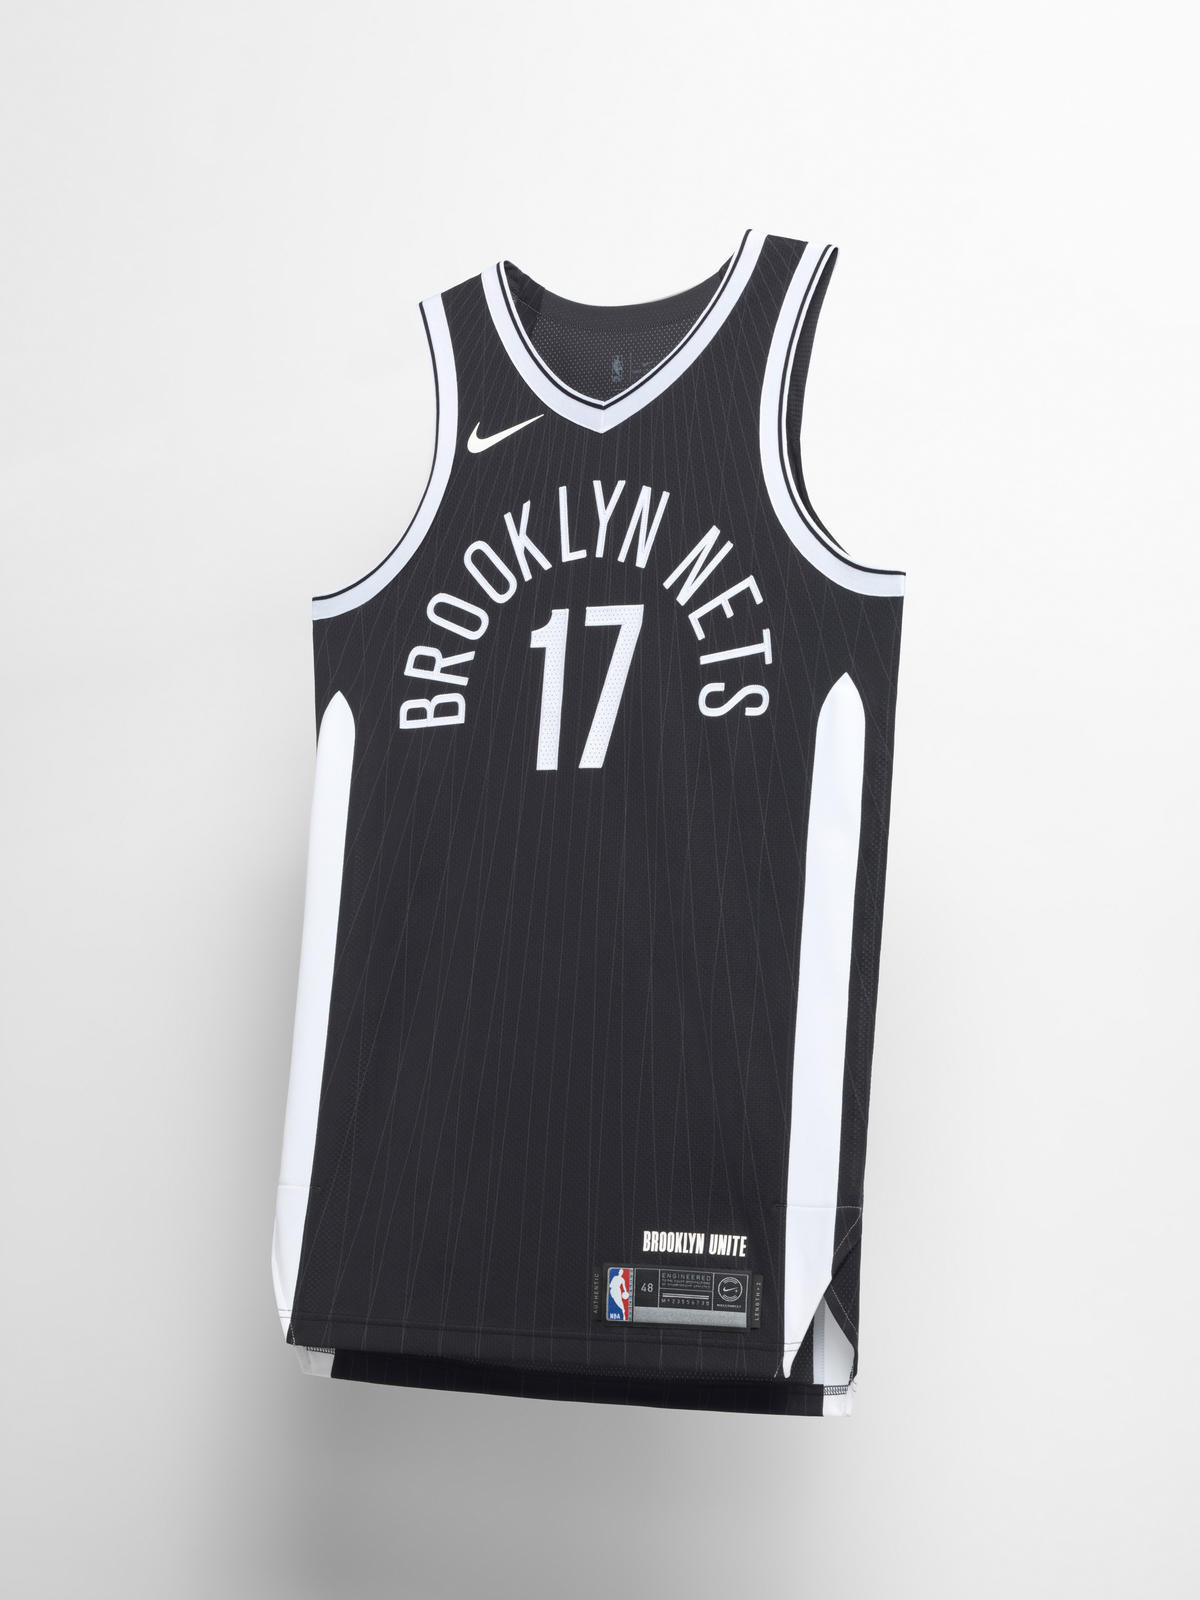 online store d8944 16032 Nike NBA City Edition Uniform - Nike News